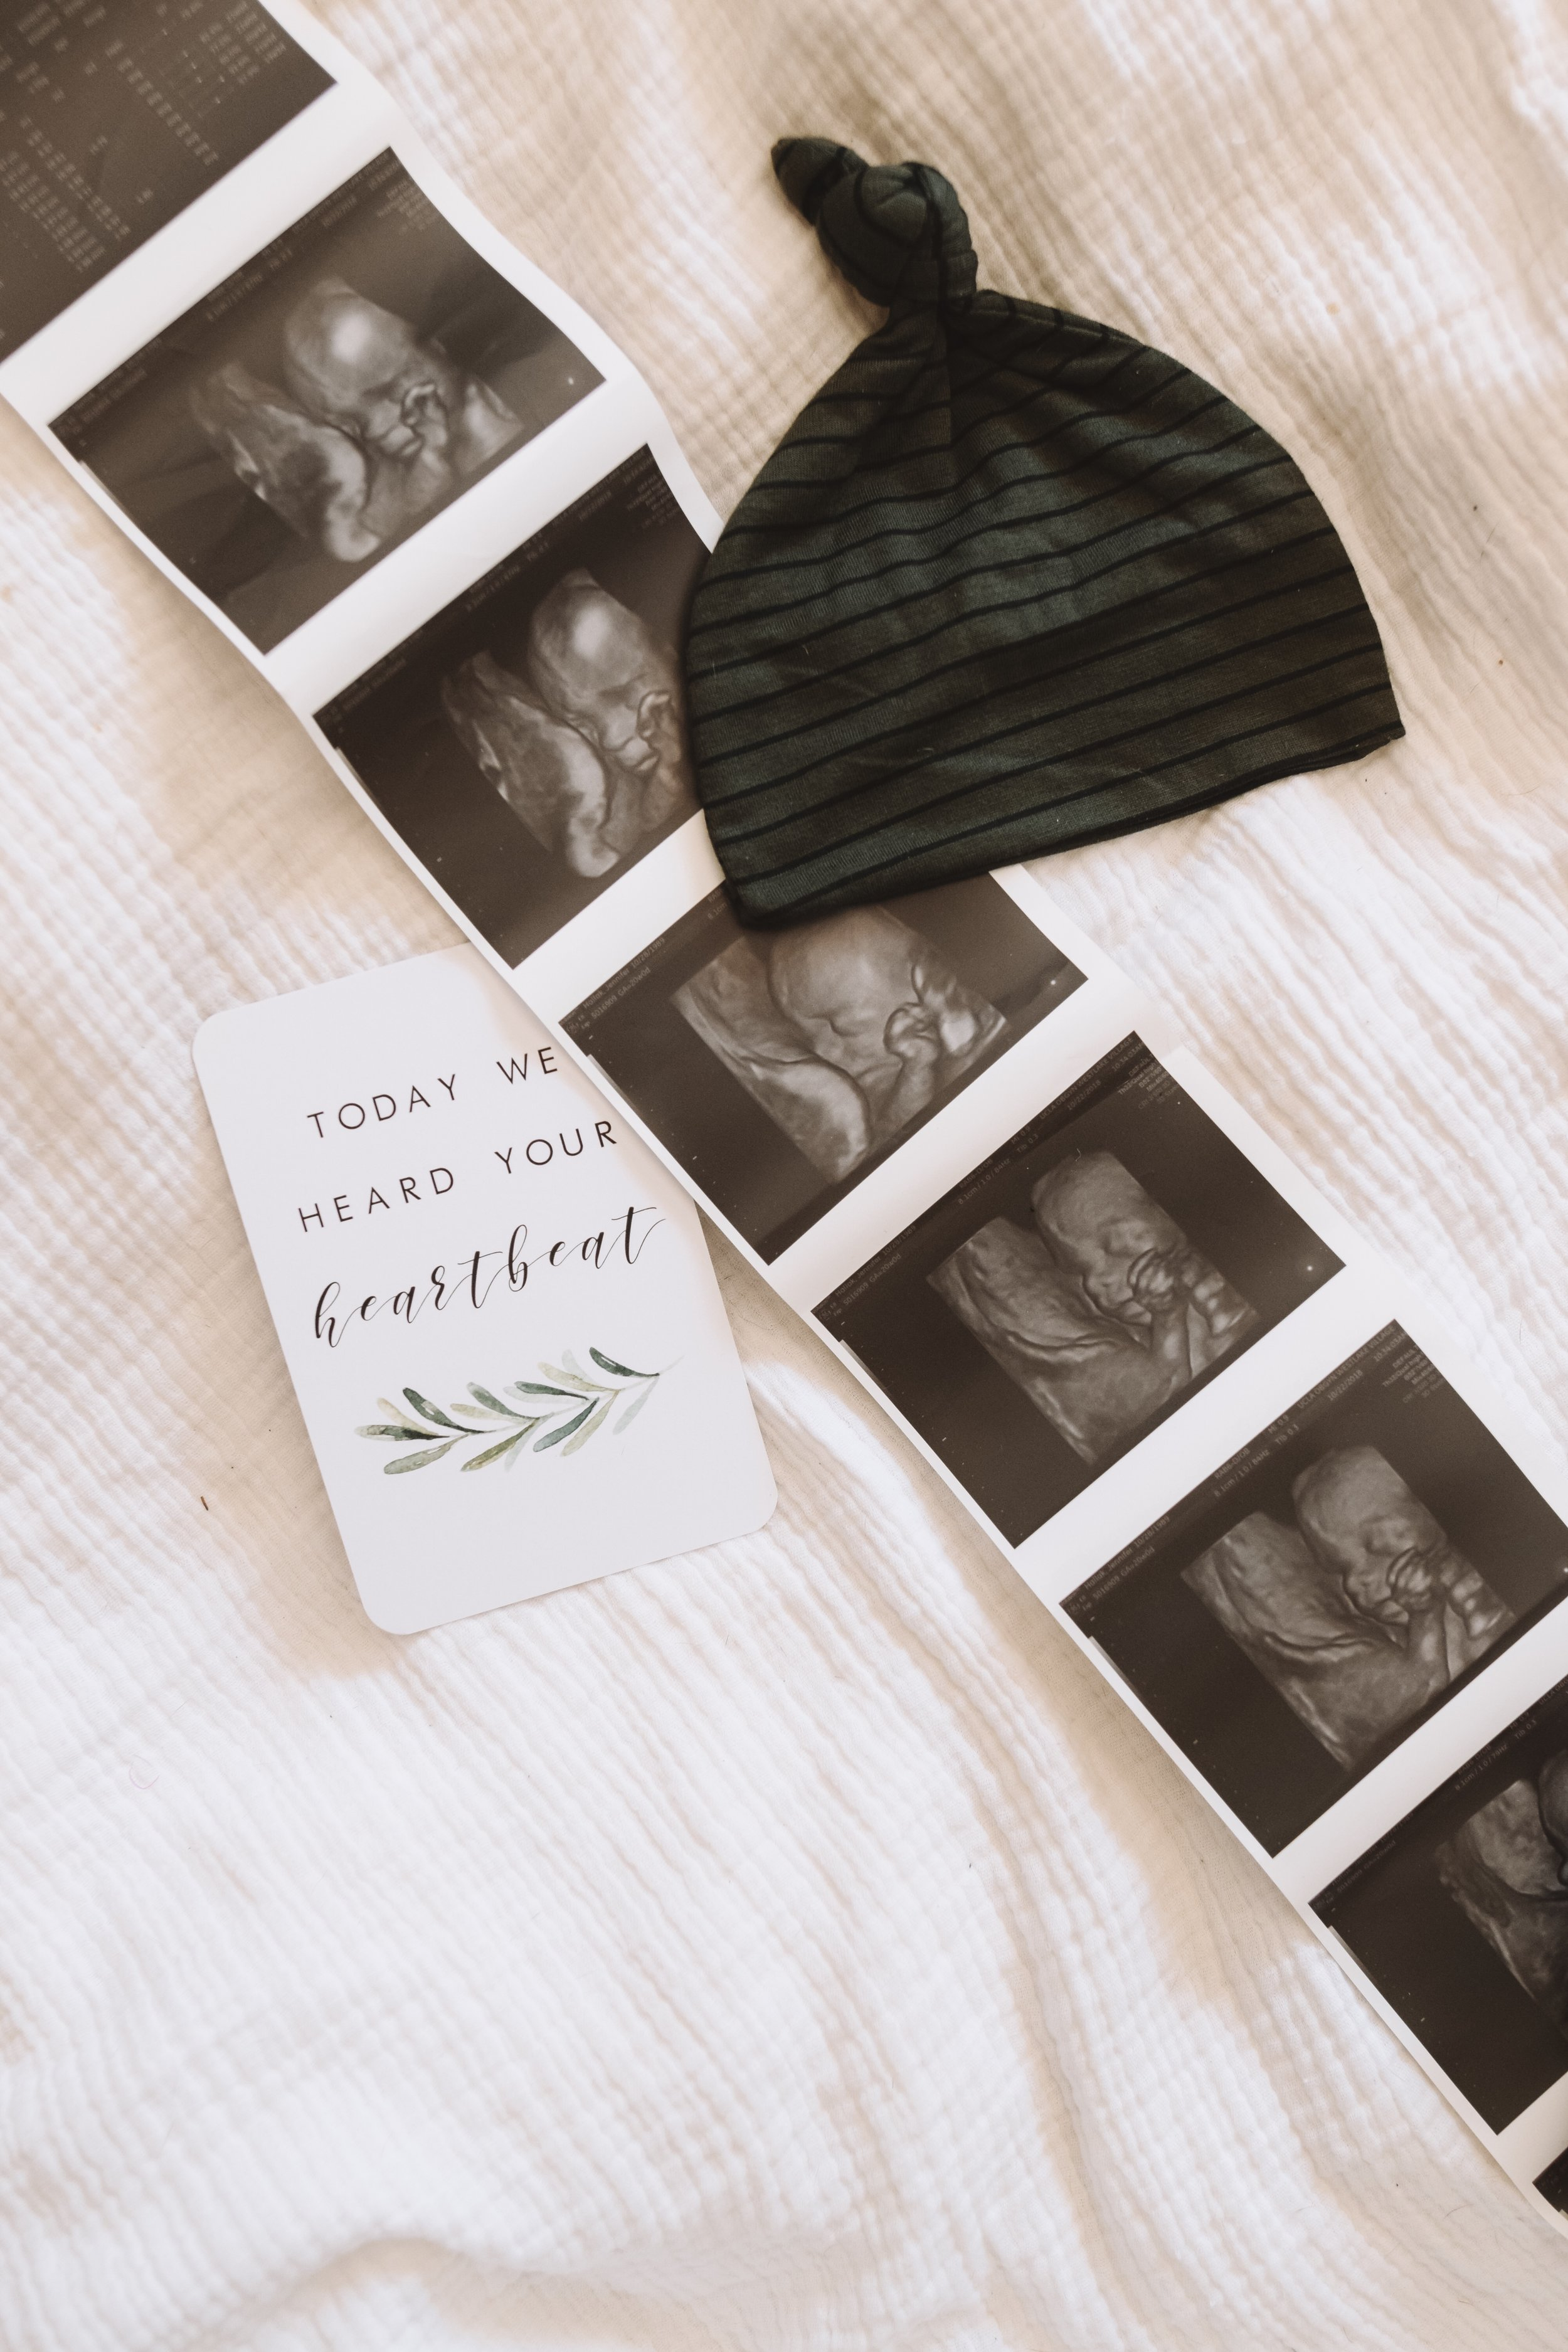 If you don't enjoy pregnancy, you are not alone. - The Overwhelmed Mommy Blogger